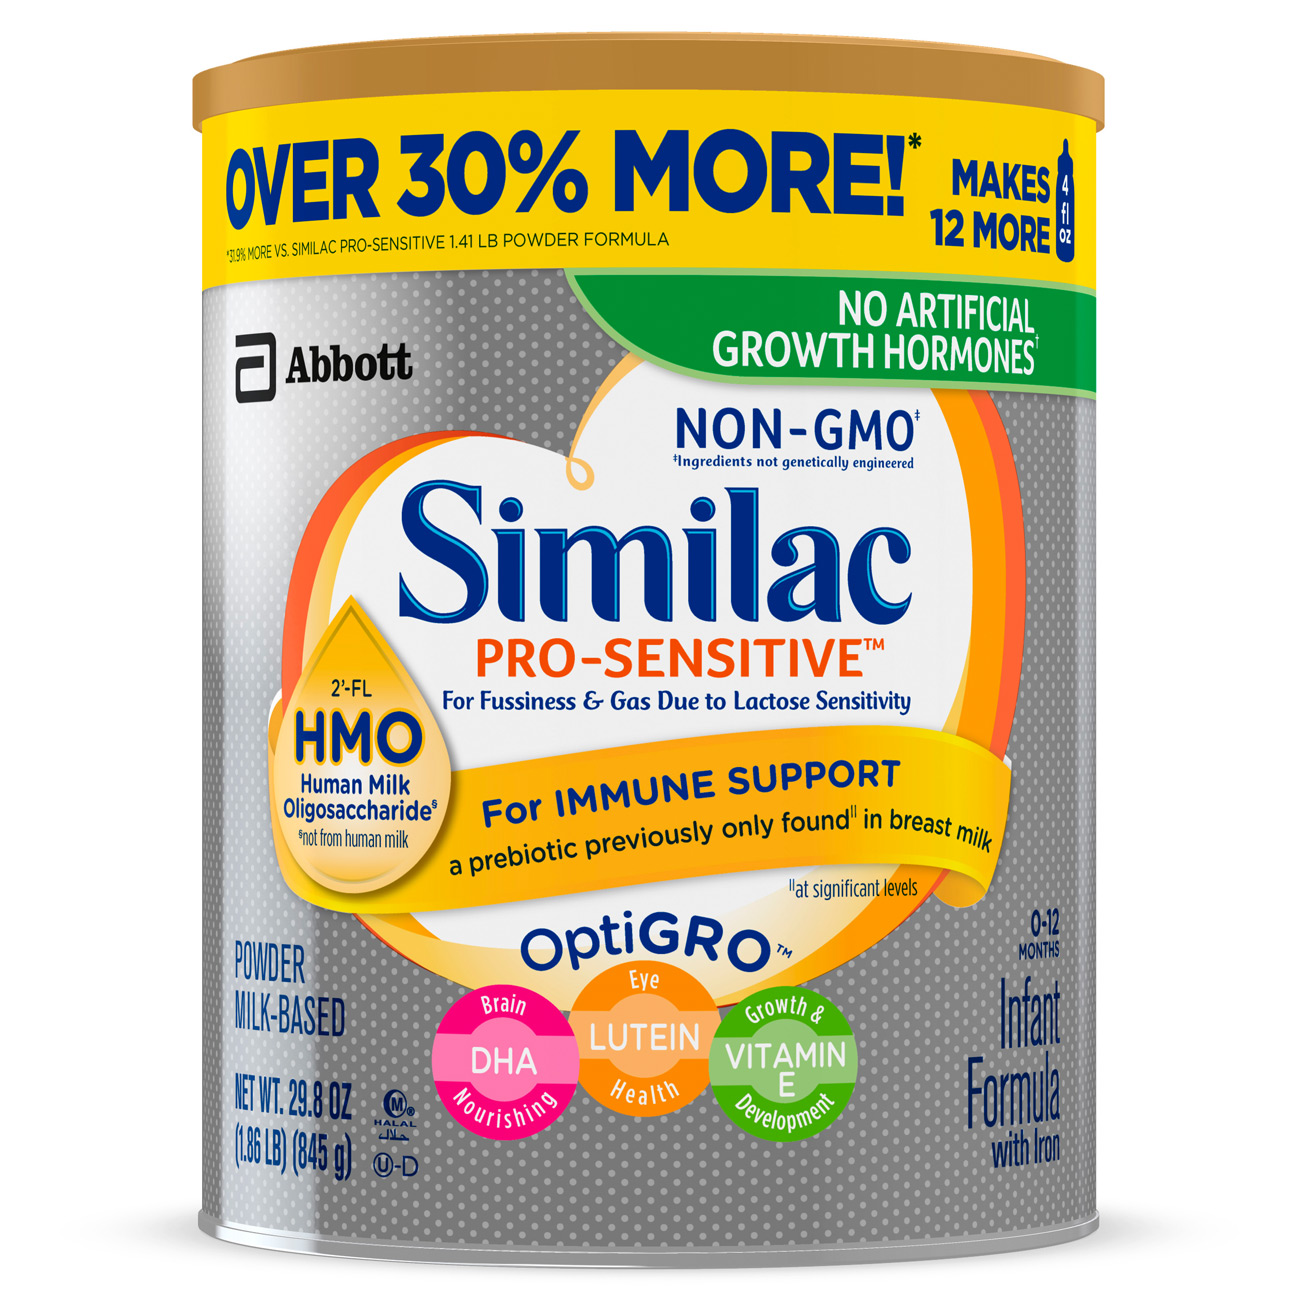 (2 pack) Similac Pro-Sensitive Infant Formula with Iron, with 2'-FL HMO, For Immune Support, Baby Formula, Powder, 29.8 ounces